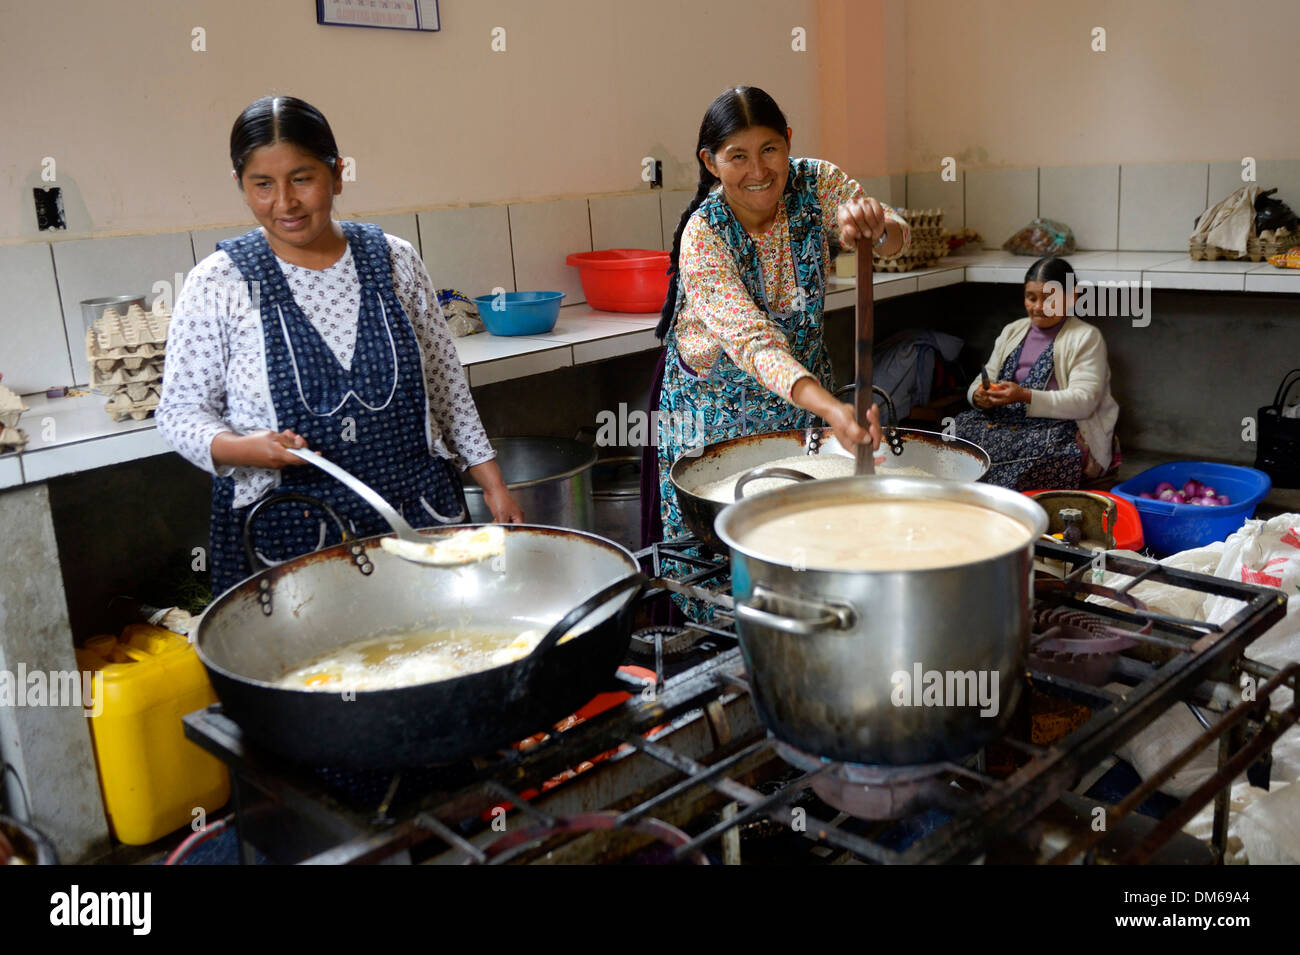 Cooks working in the kitchen of a boarding school, Carmen Pampa, Yungas, Department of La Paz, Bolivia - Stock Image